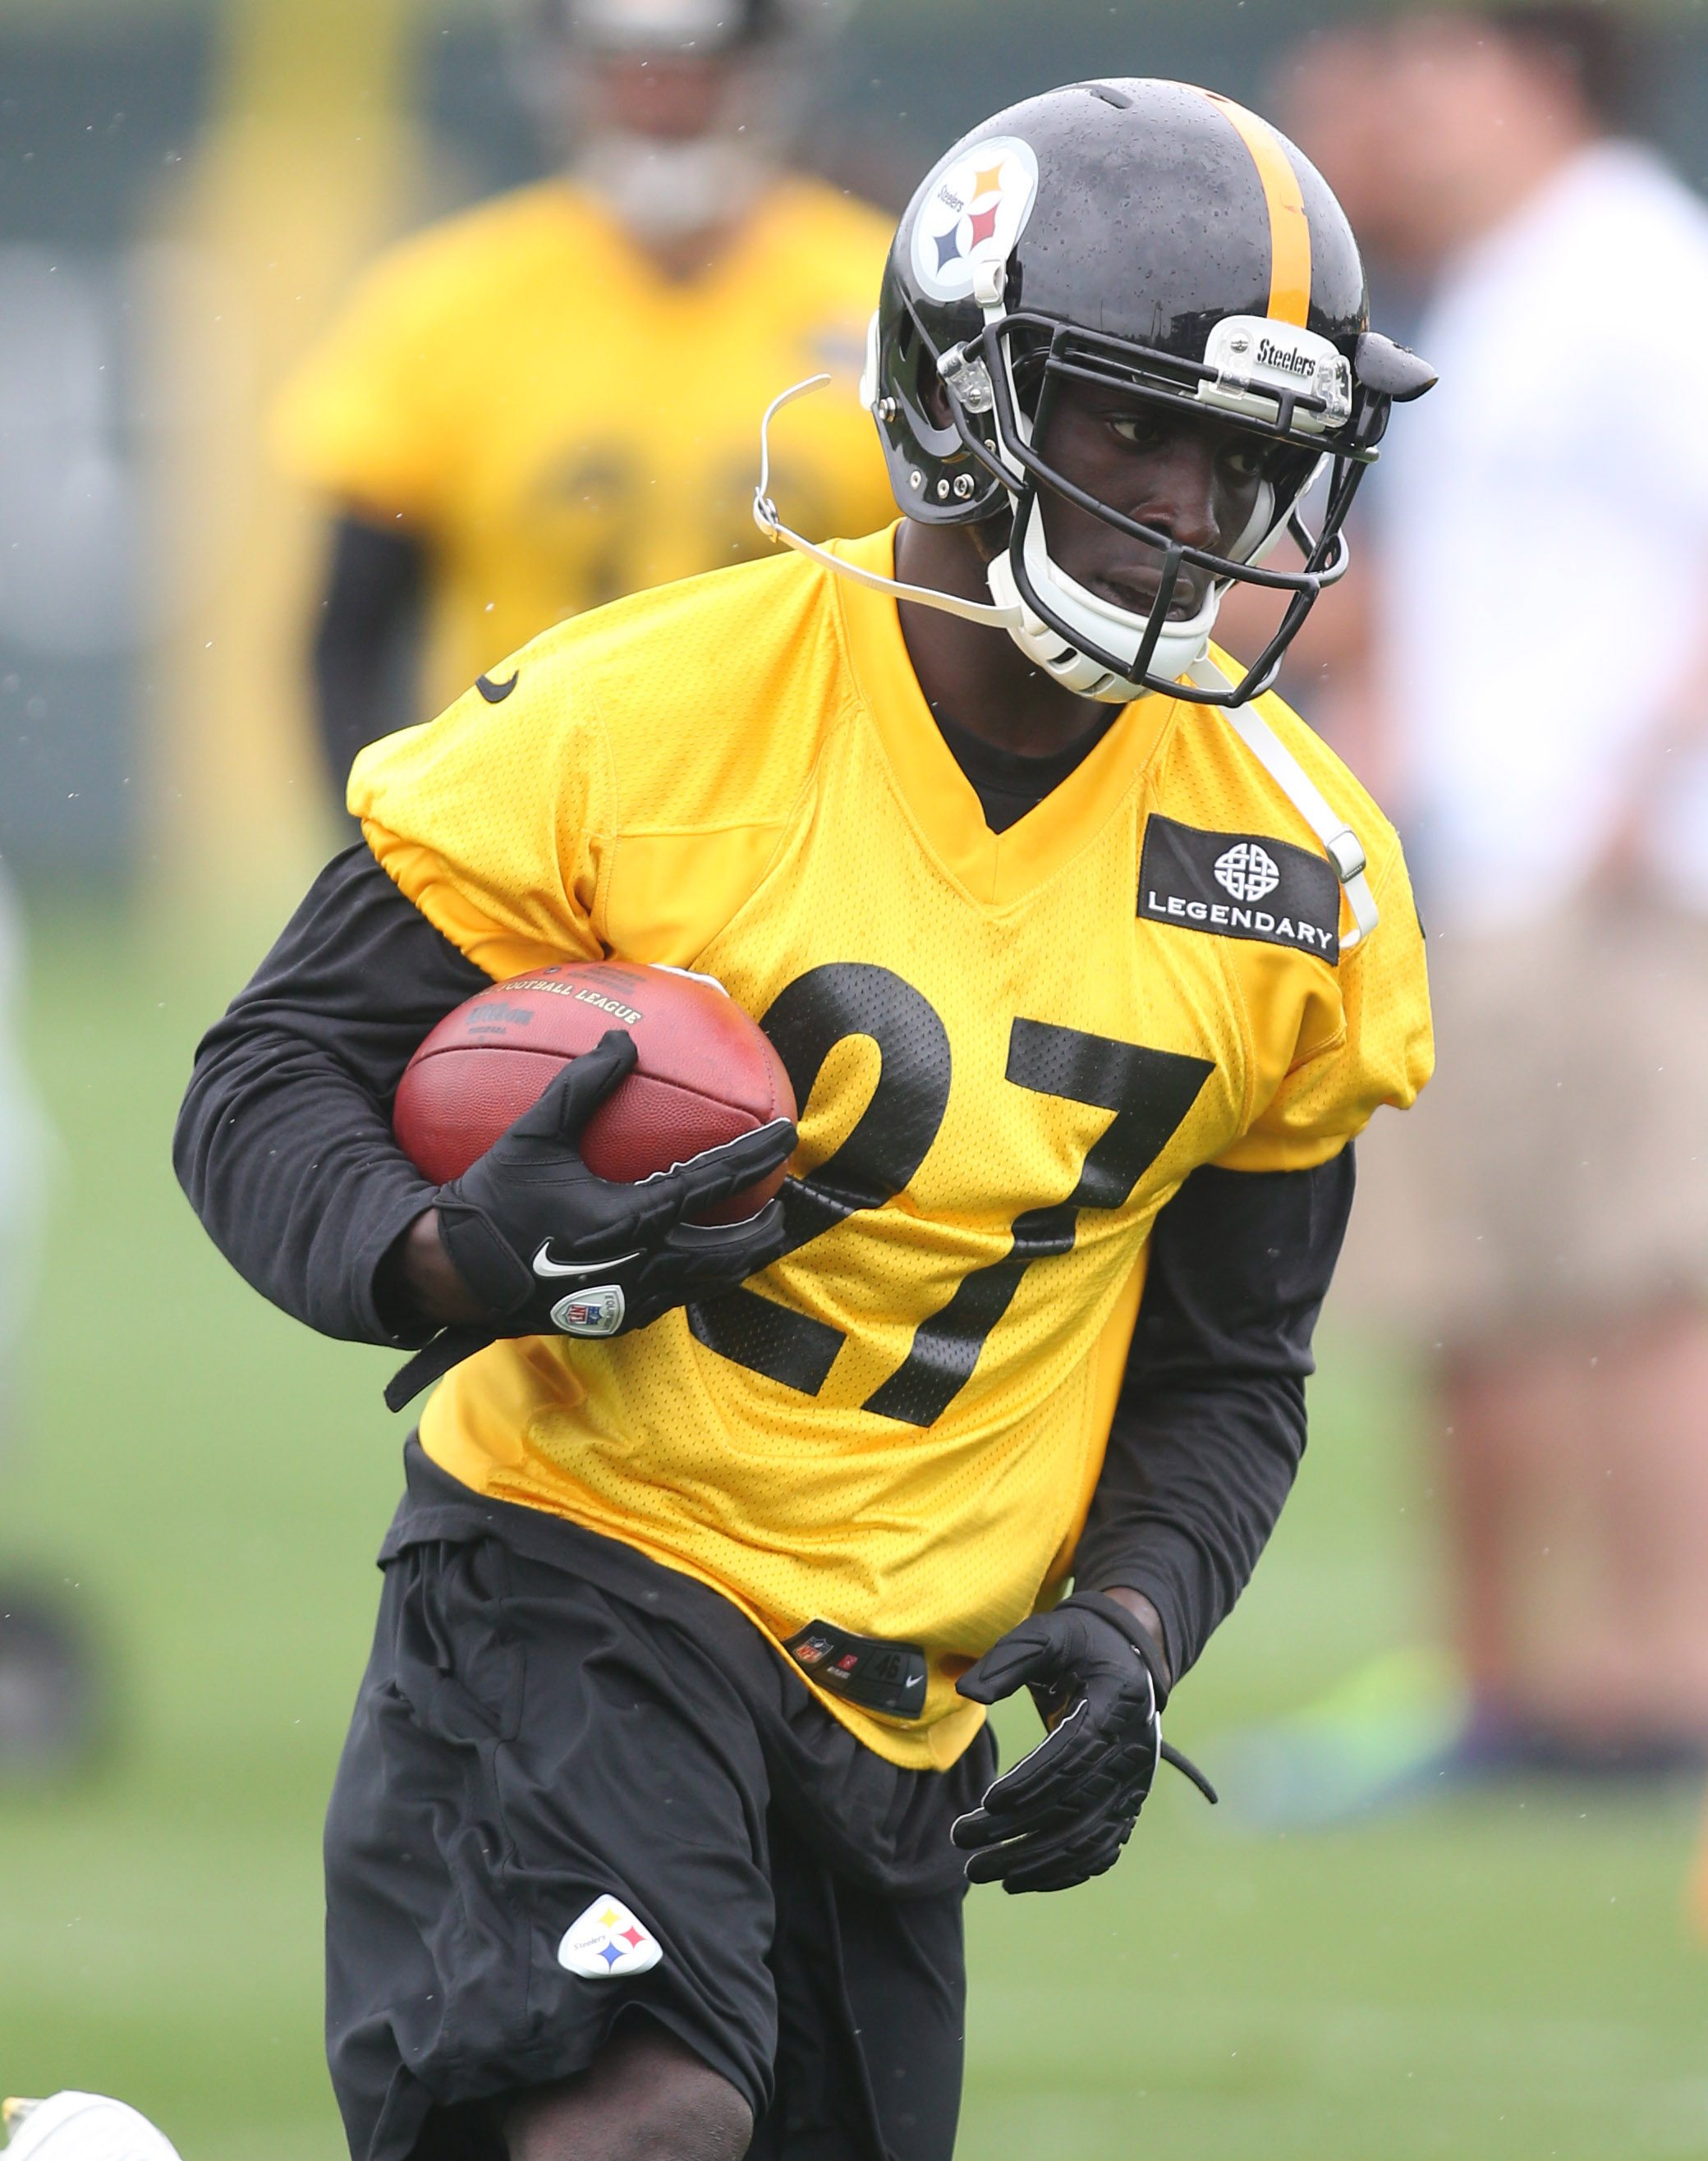 8582226-nfl-pittsburgh-steelers-ota